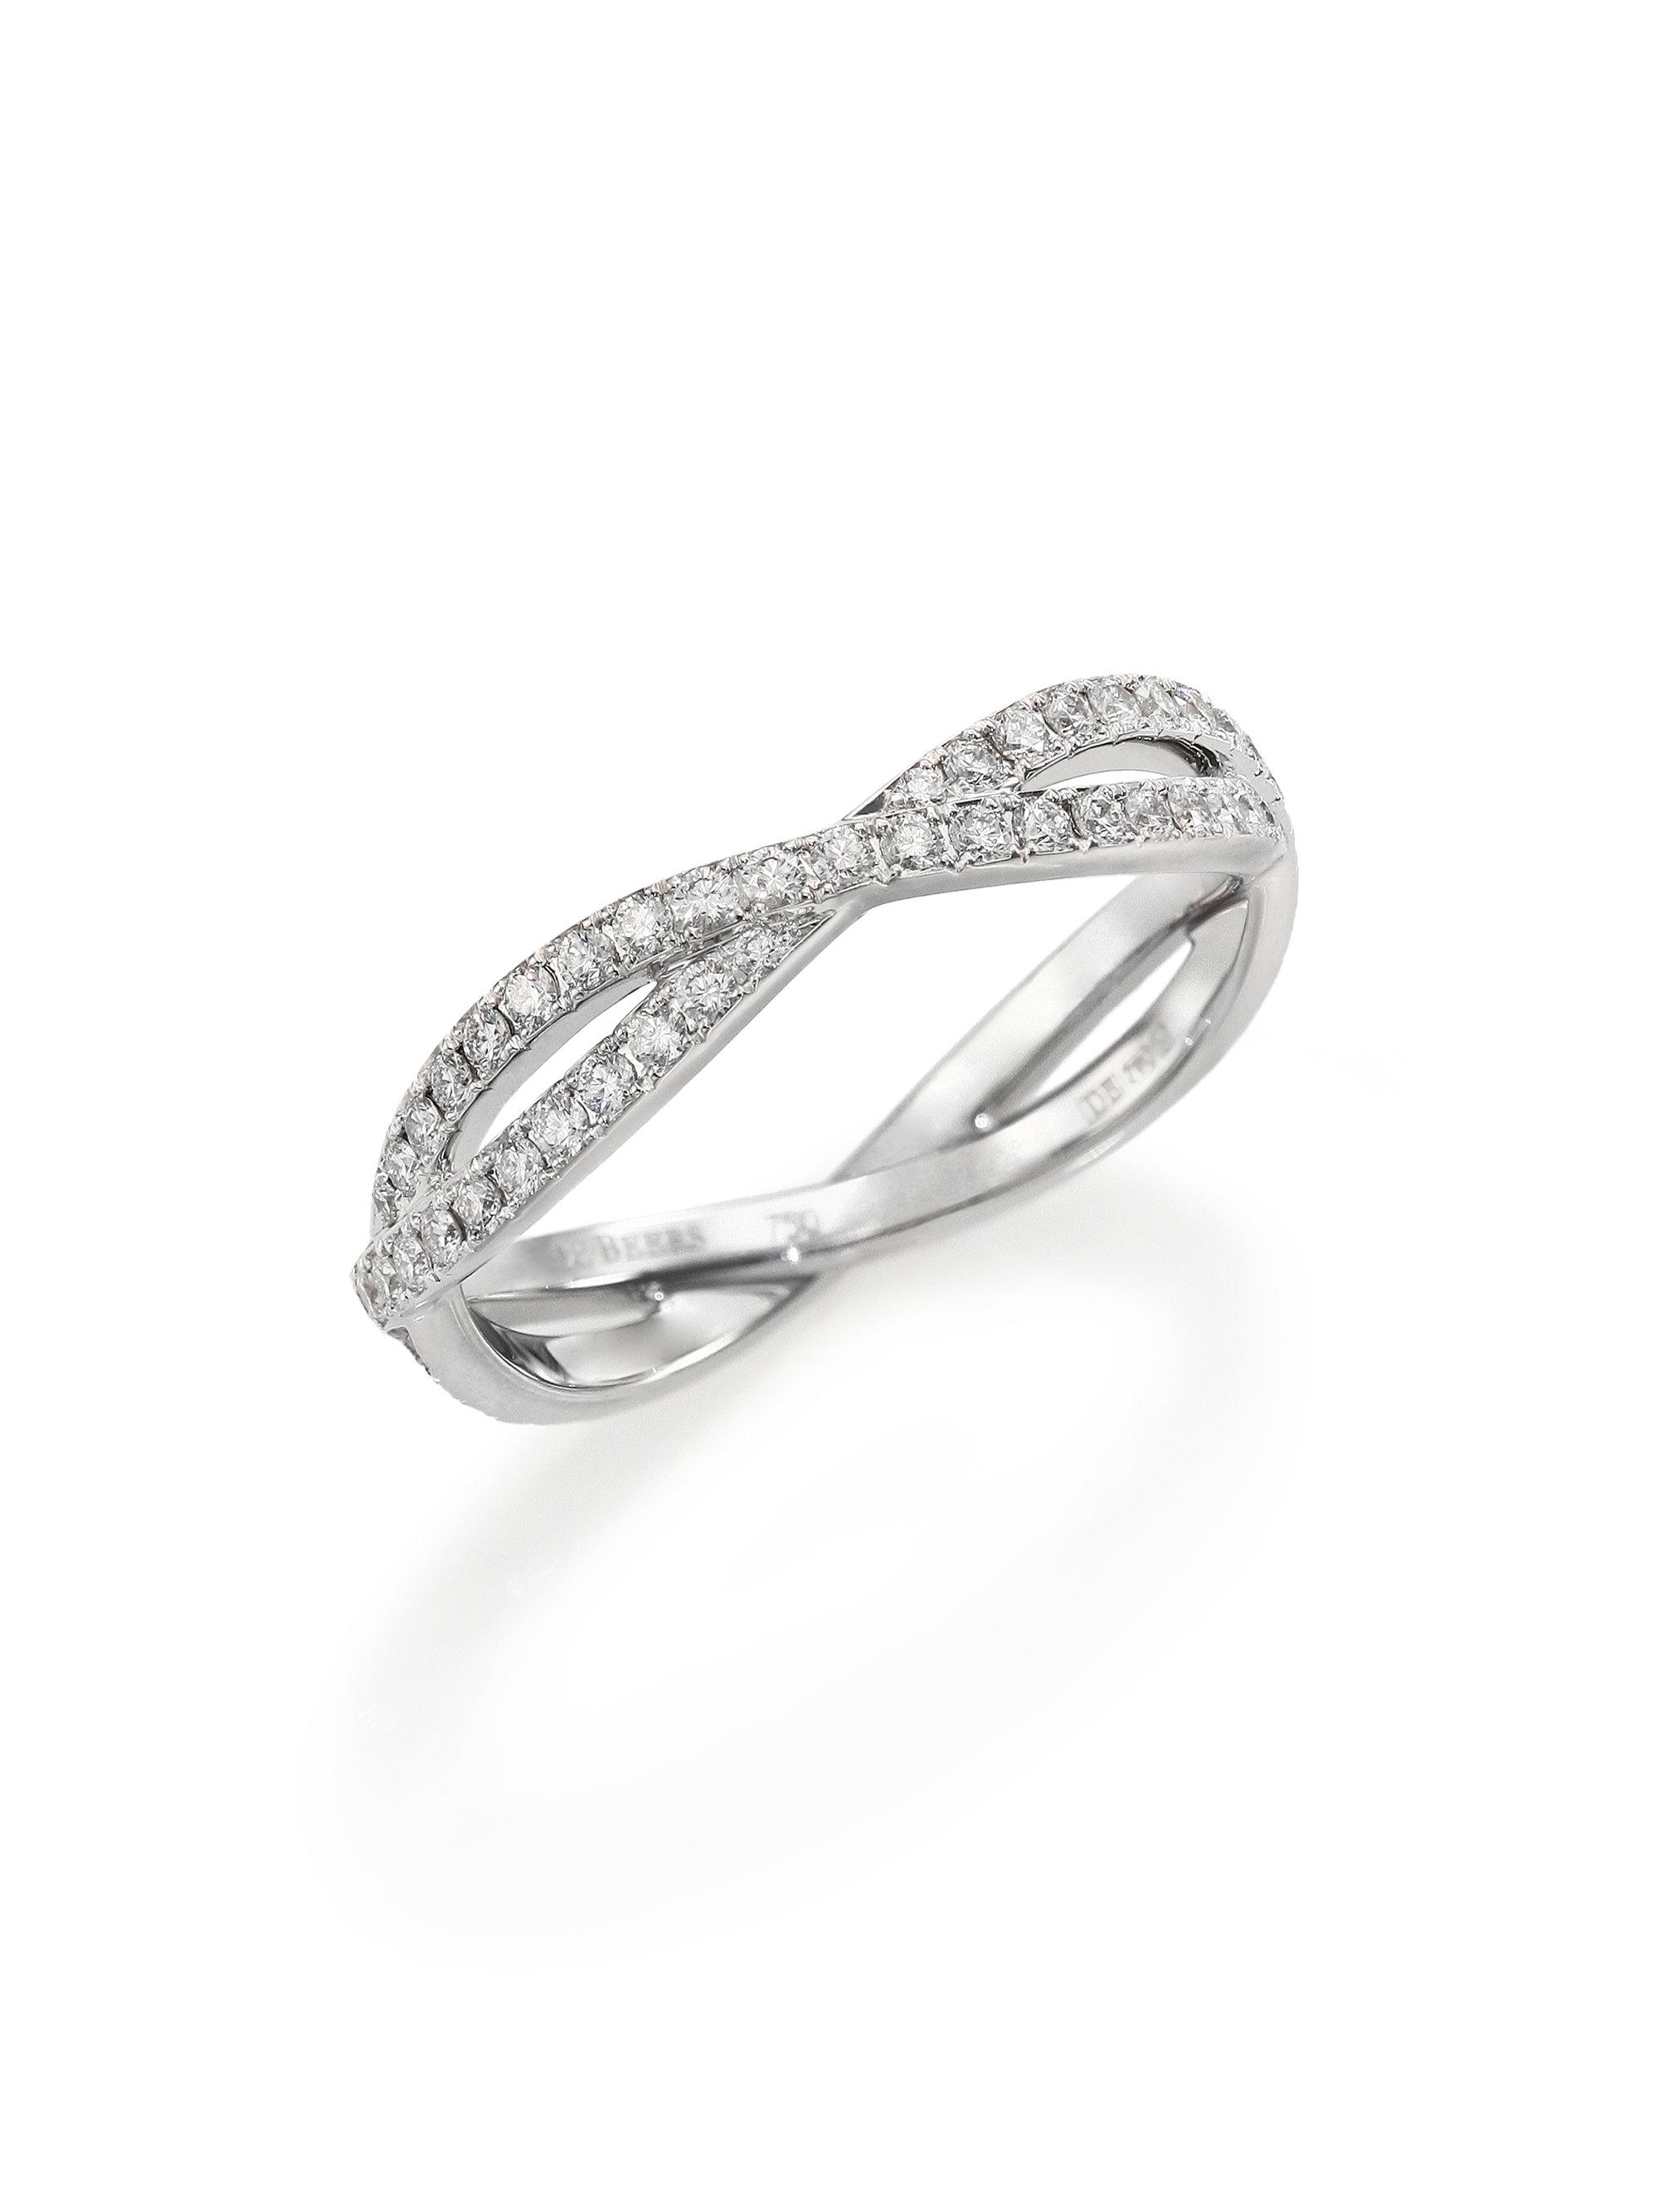 vow vrai infinity the oro bands products wg band white mock gold diamonds